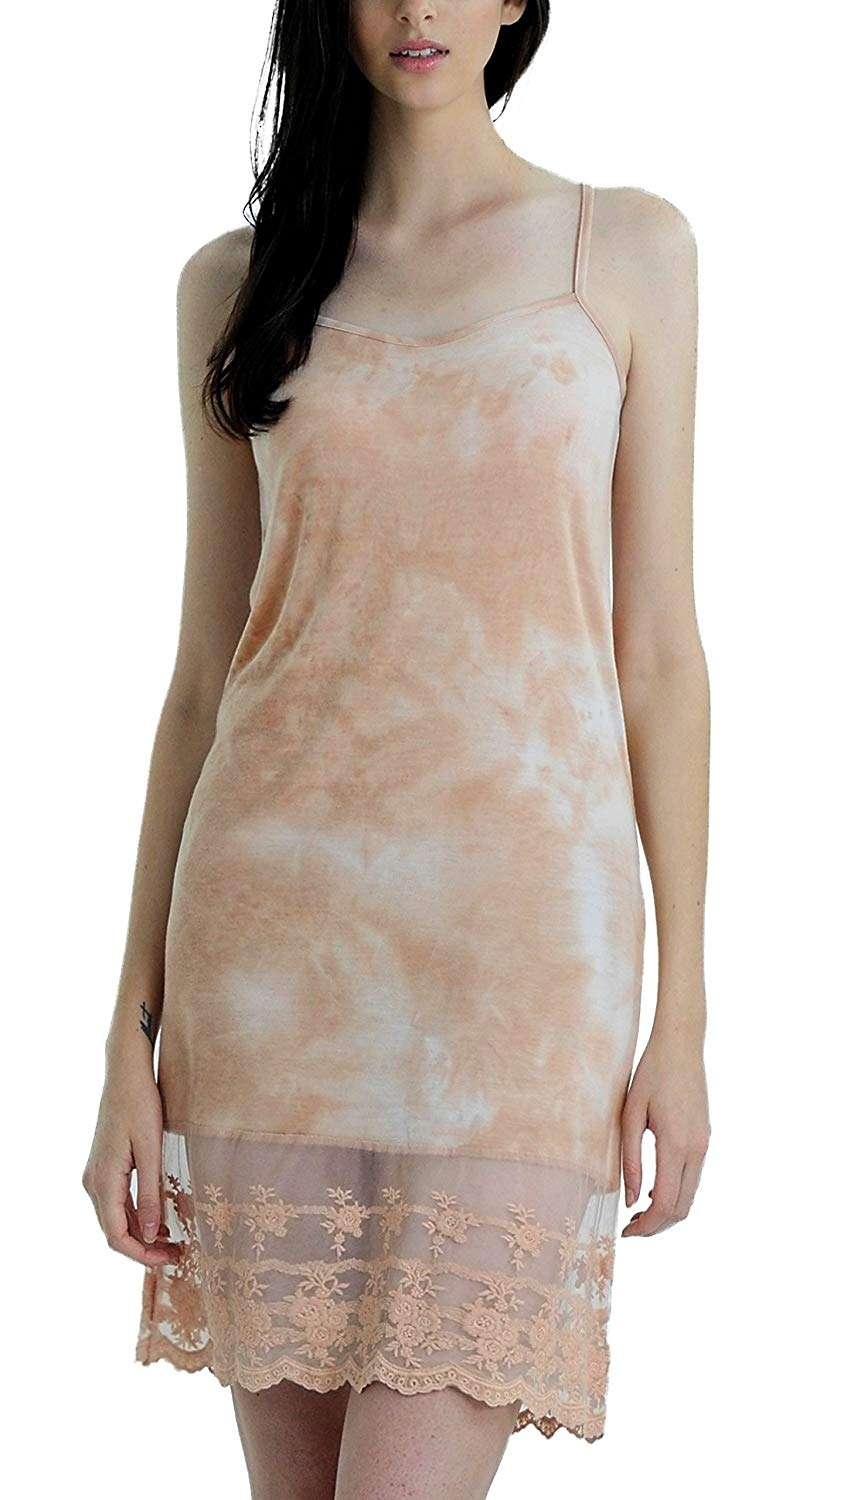 7f7445649 Get Quotations · Melody Shop Lev Women s Knit Tie Dye Full Slip Dress  Extender with Lace Bottom